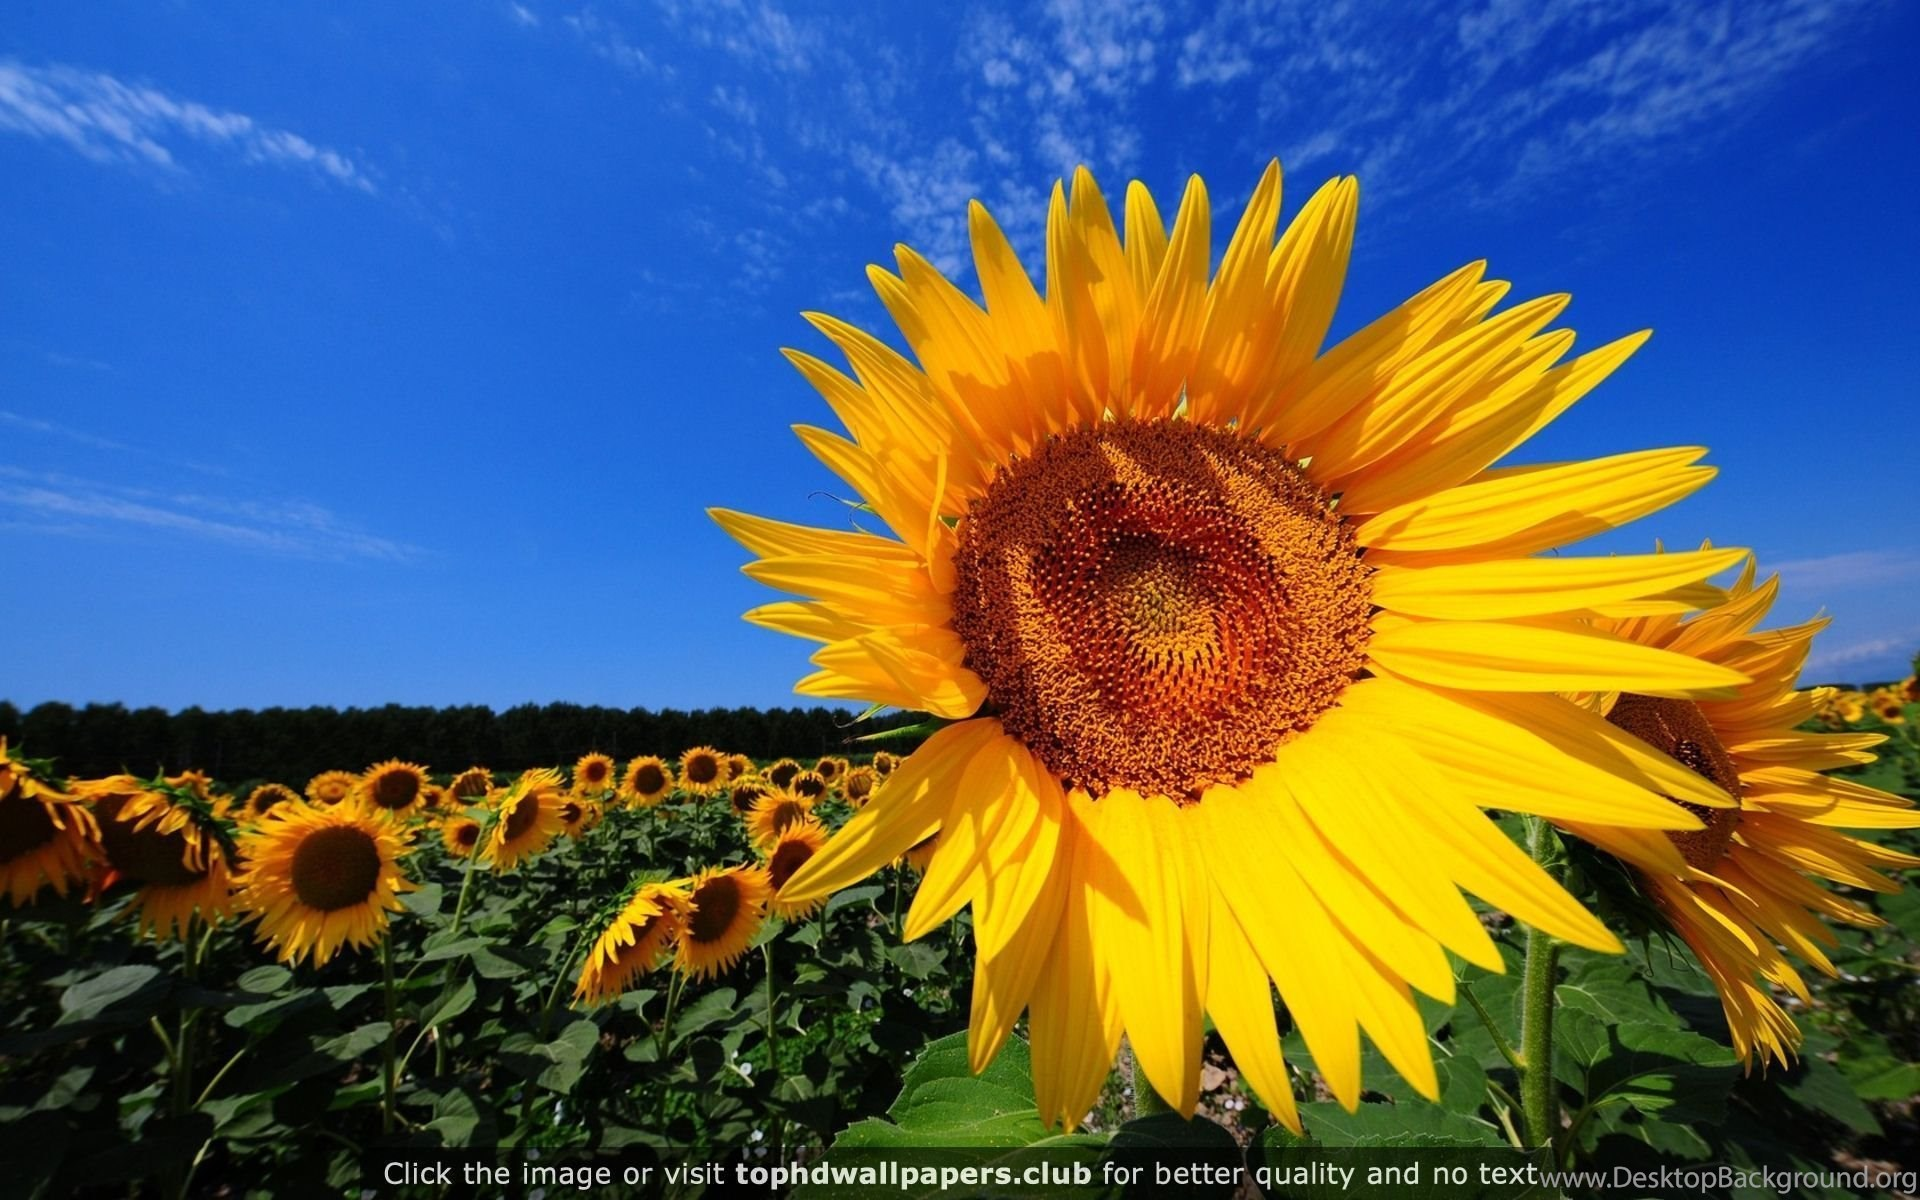 Sunflower Fields 4K Or HD Wallpapers For Your PC Mac Mobile